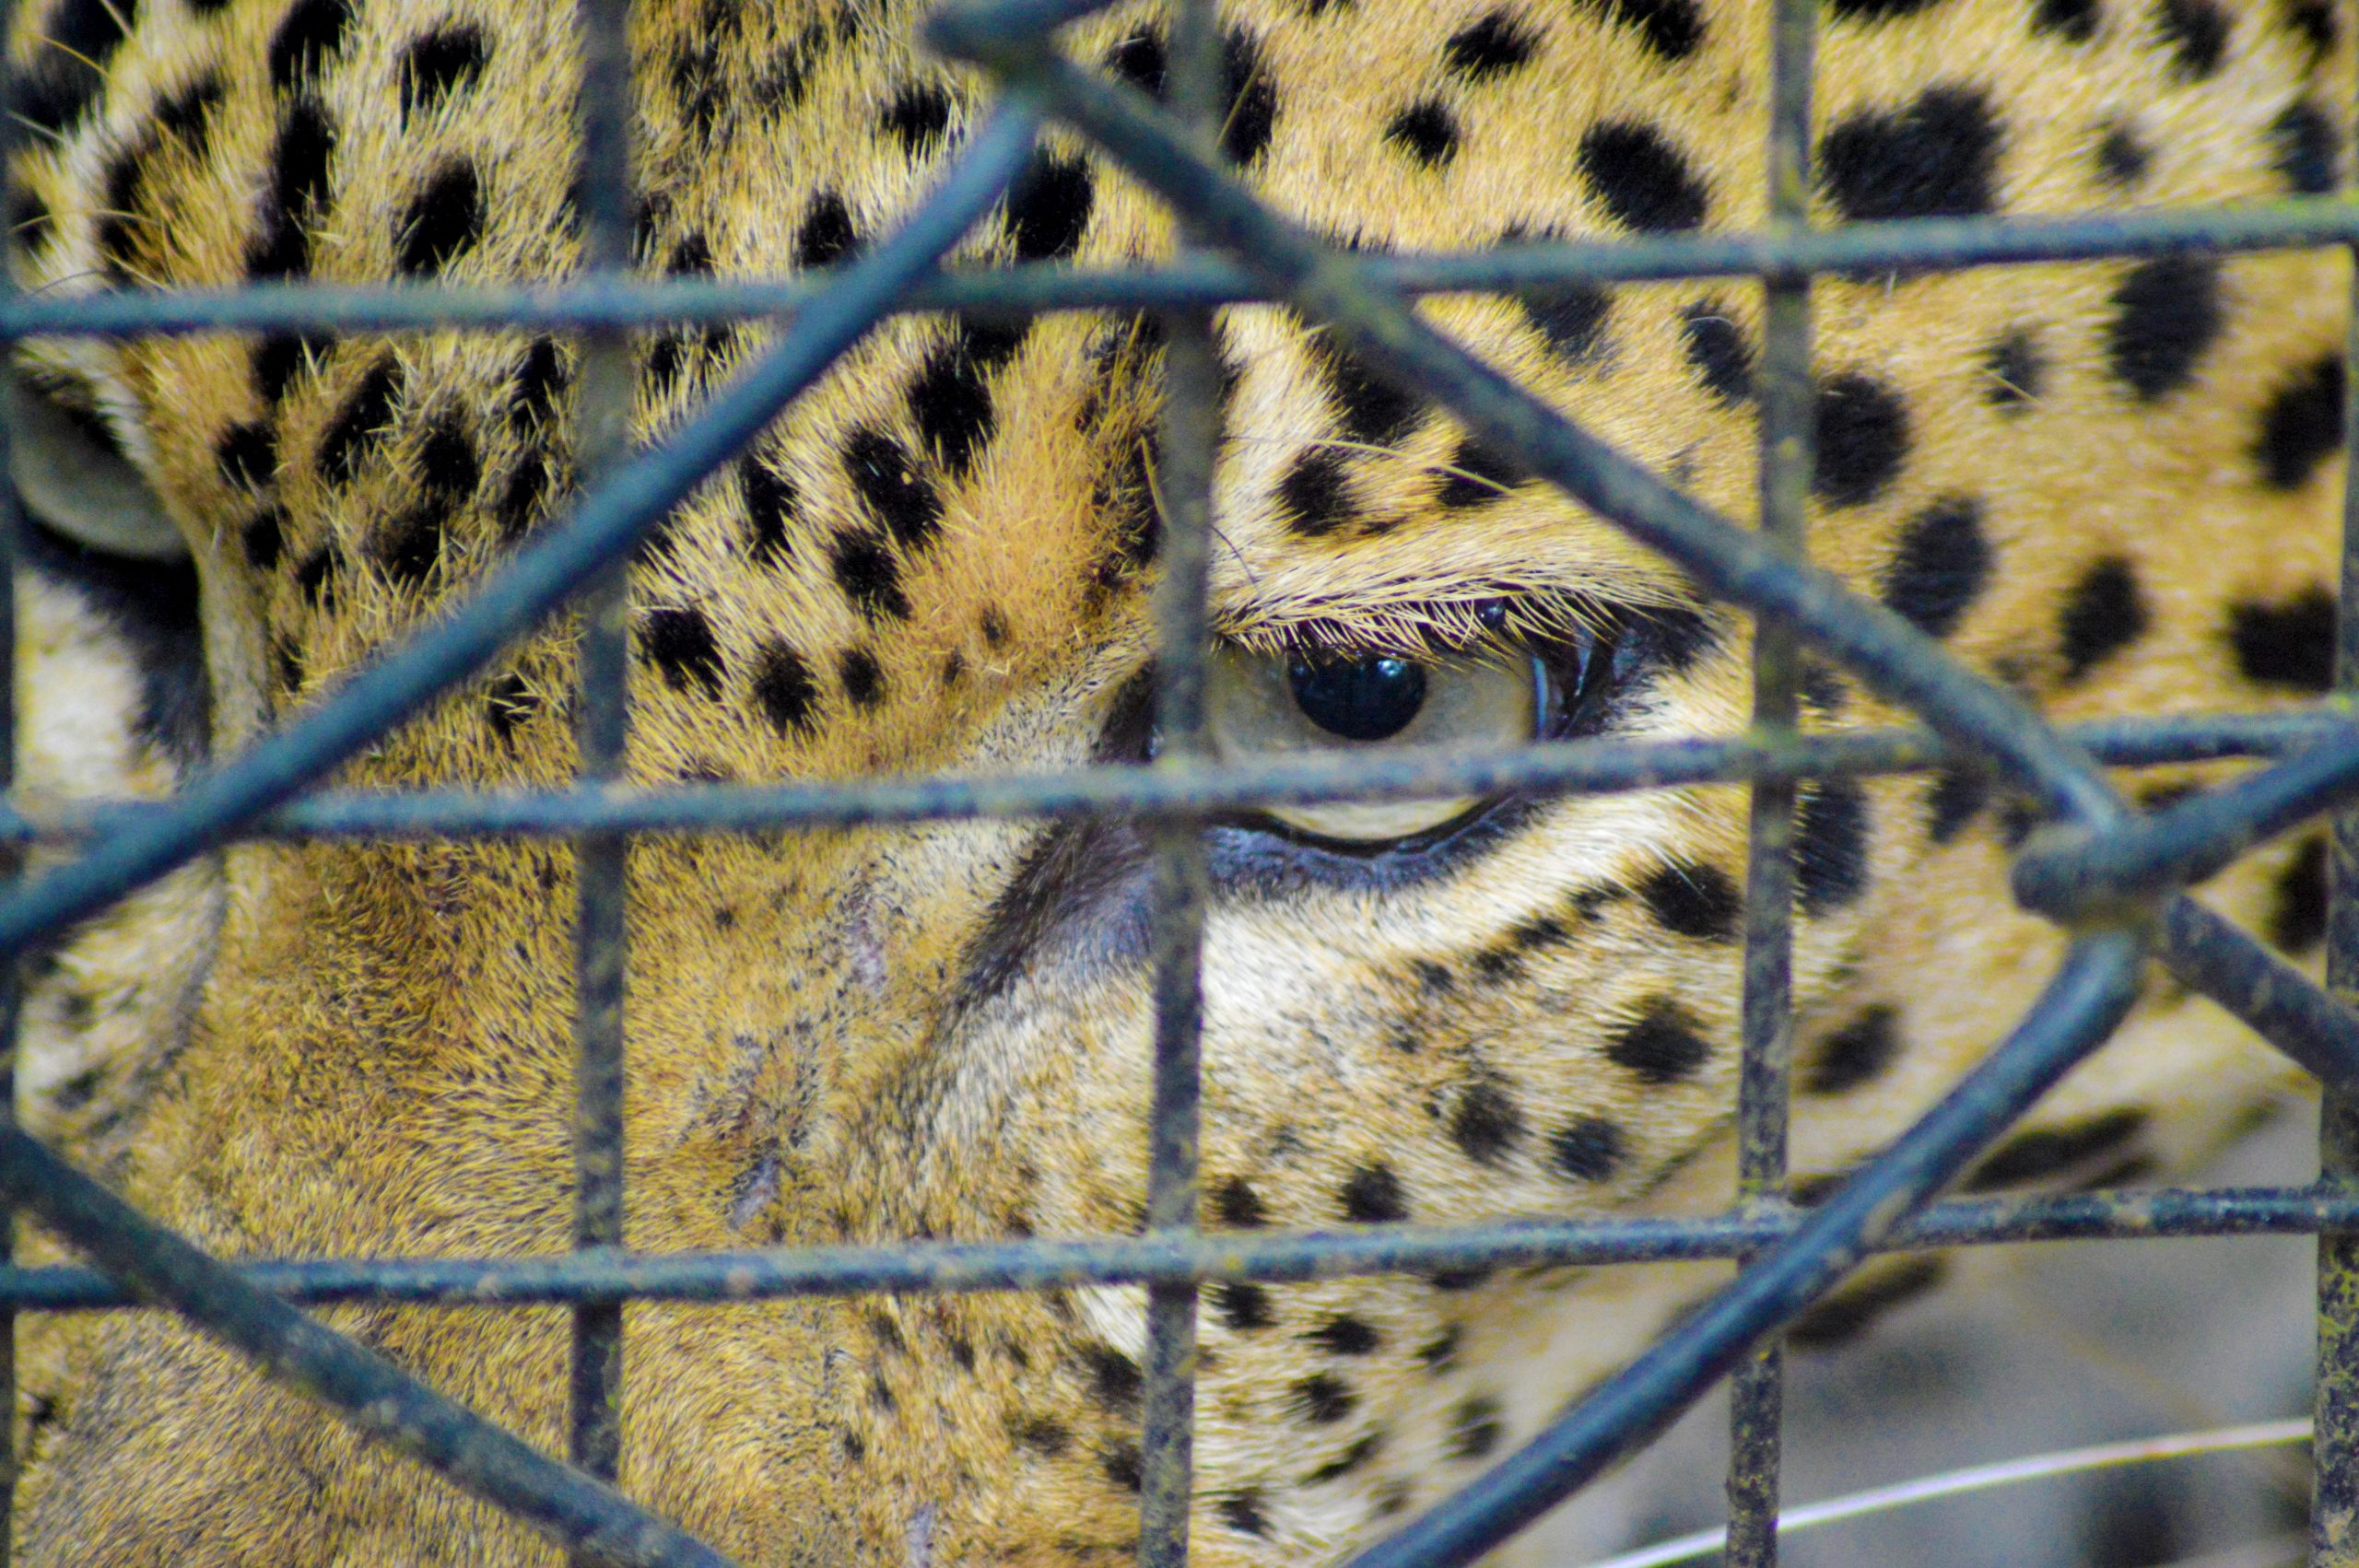 A leopard in a cage